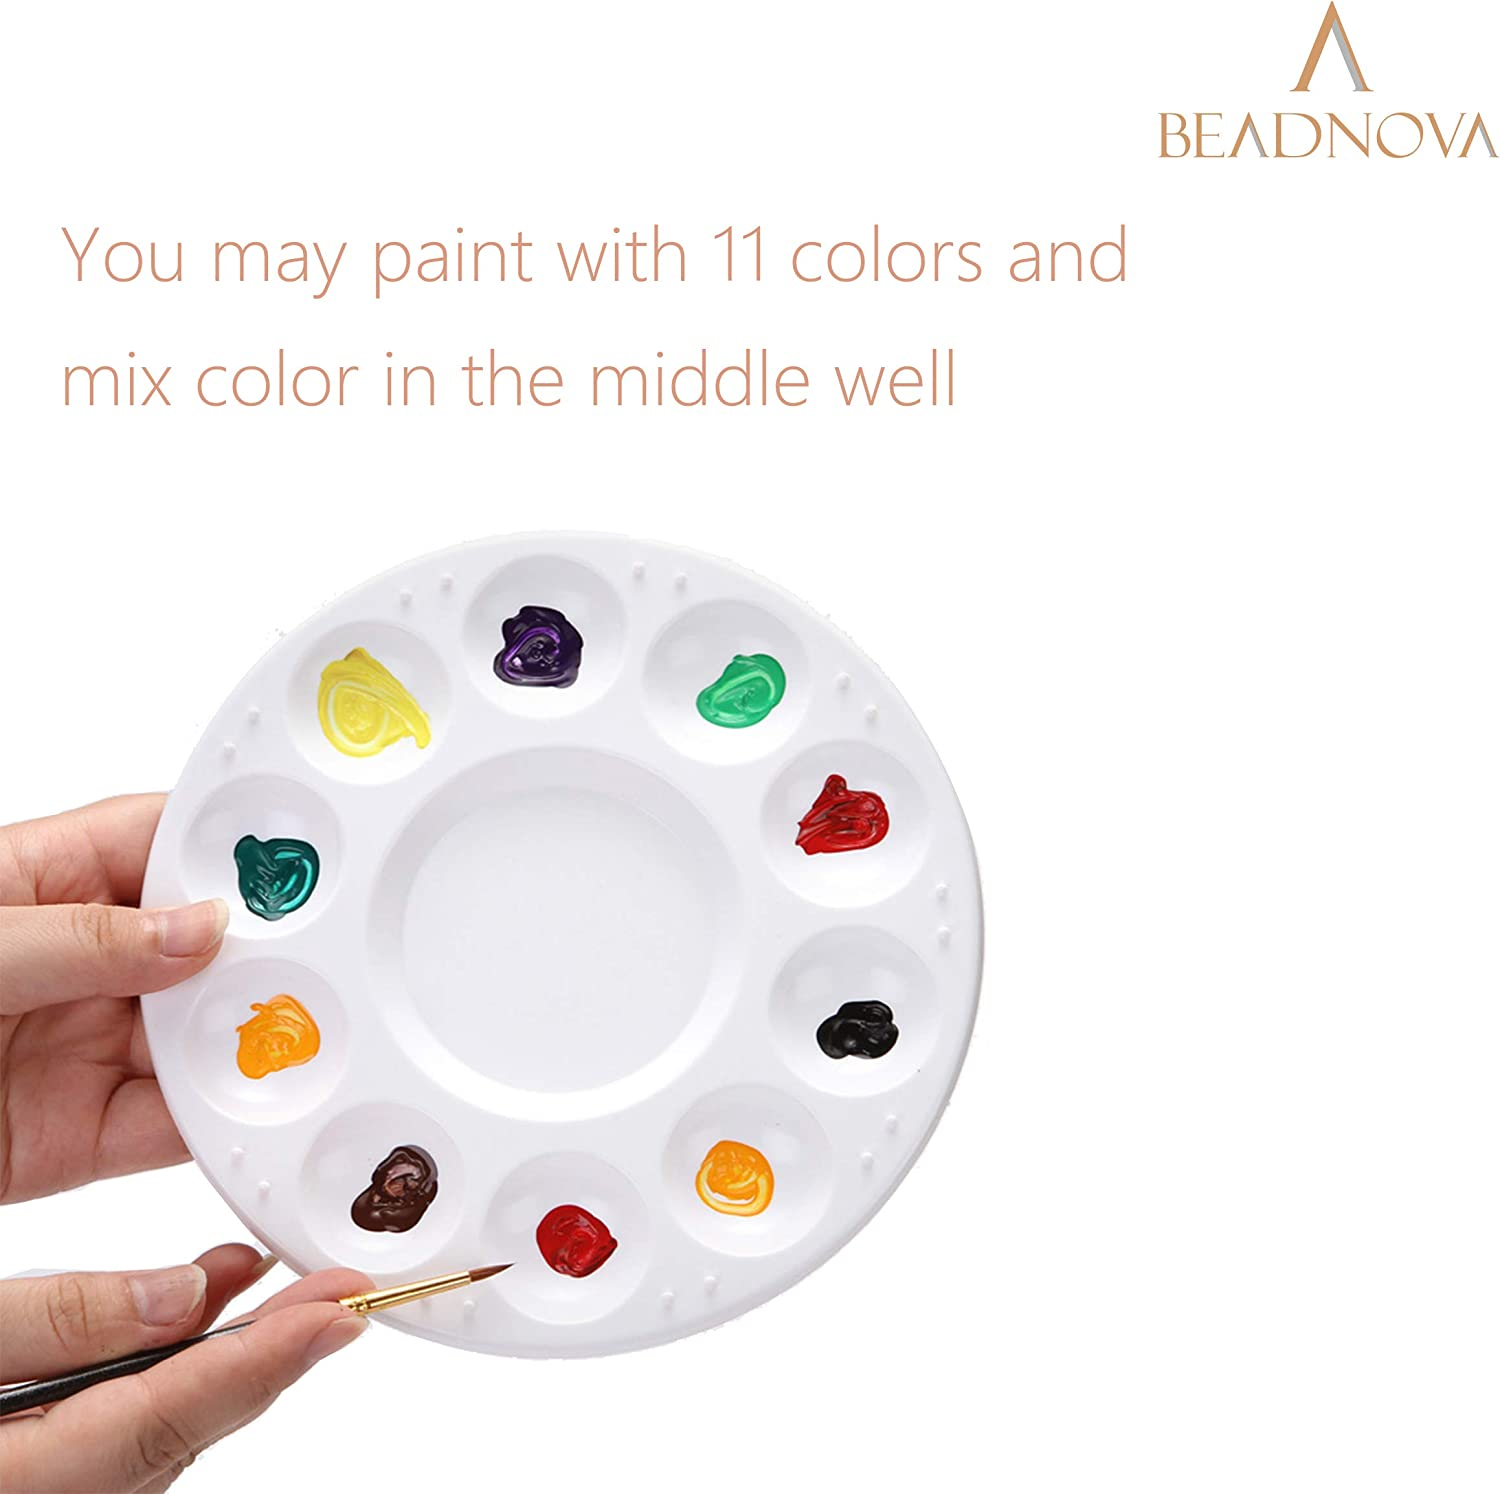 3 pcs, Acrylic Paint, Oil Paint, Cupcake Decorating BEADNVOA Round Paint Tray Palette Paint Pallet Model Paint Tray for Kids Artists Painters Cupcake Tray for Party